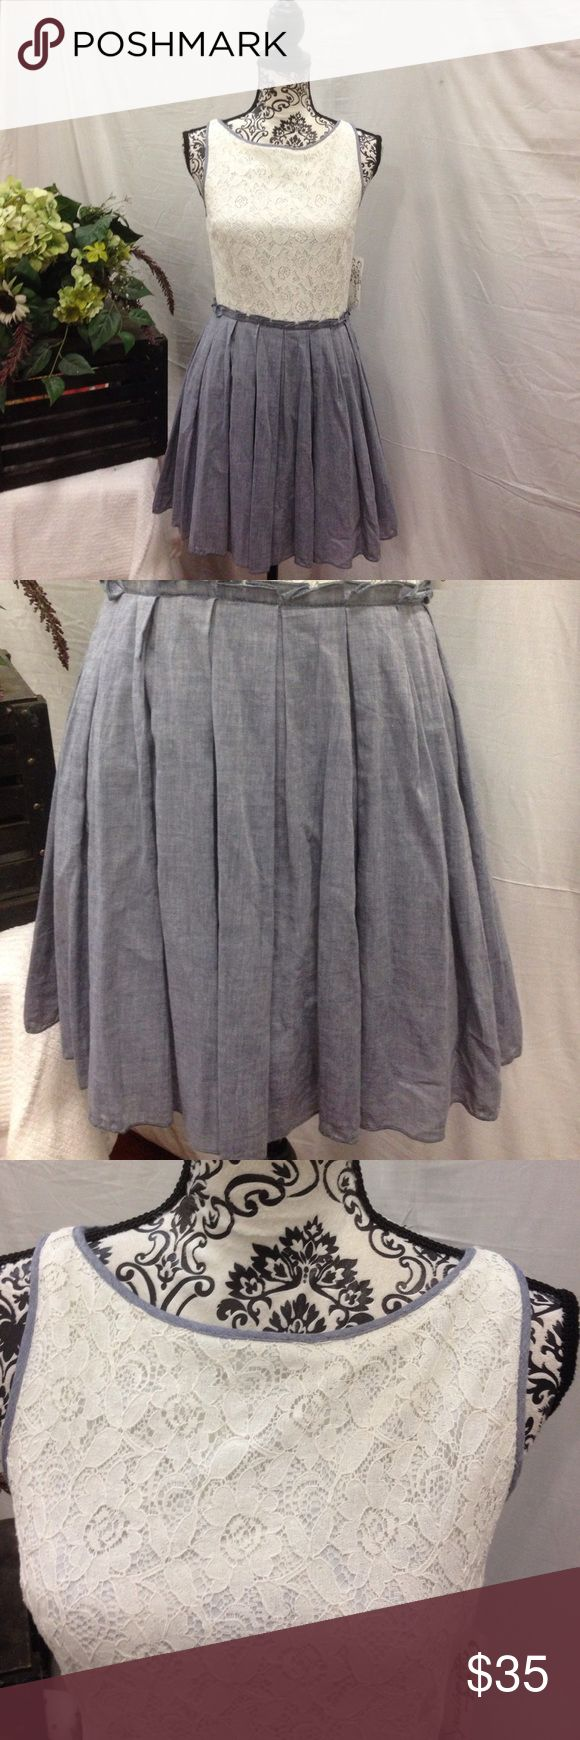 NWT Speechless Chambray & Lace Dress Speechless. New with tags. Lined. Chambray grayish blue and cream Lace. Zip up back. Size 9. Speechless Dresses Midi